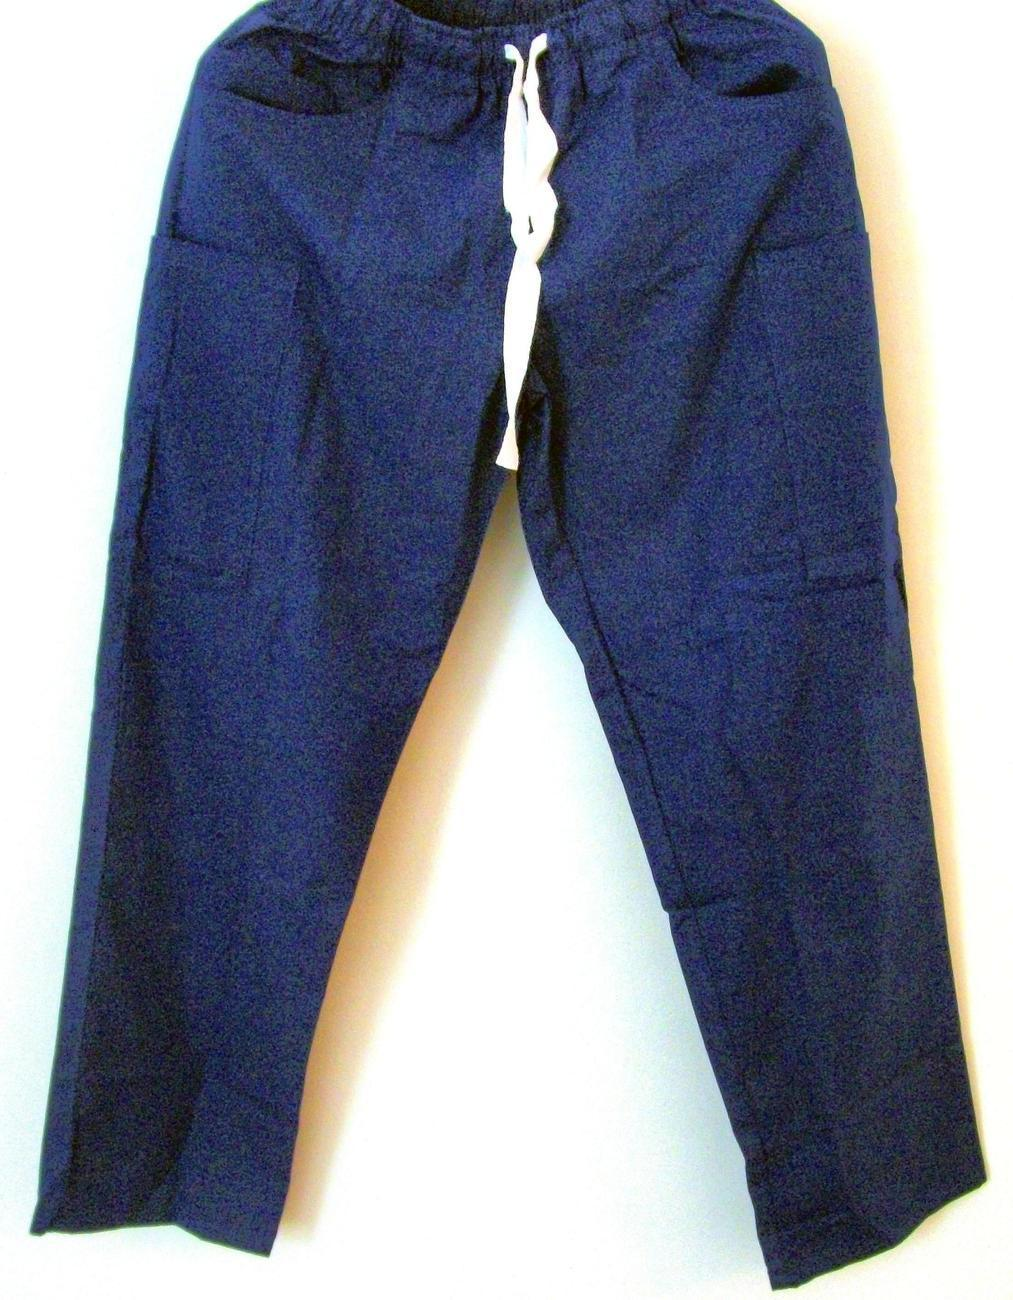 Royal_blue_5_pocket_scrub_pants